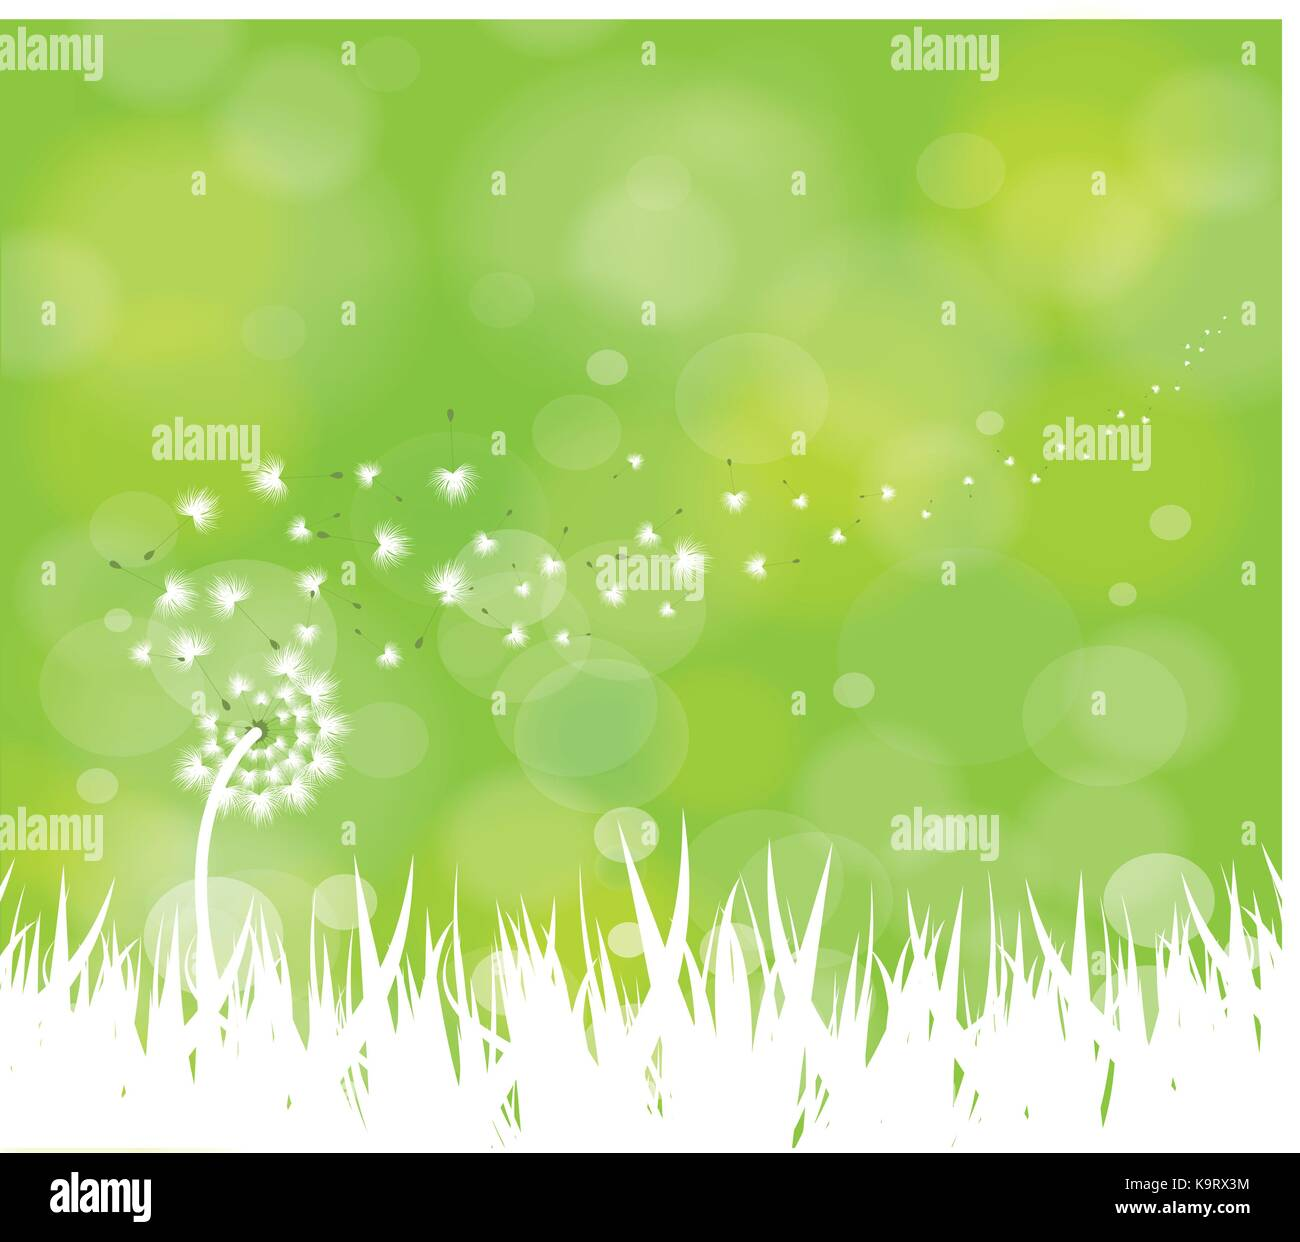 c1e8ff73d586e spring background with white dandelions Stock Vector Art ...